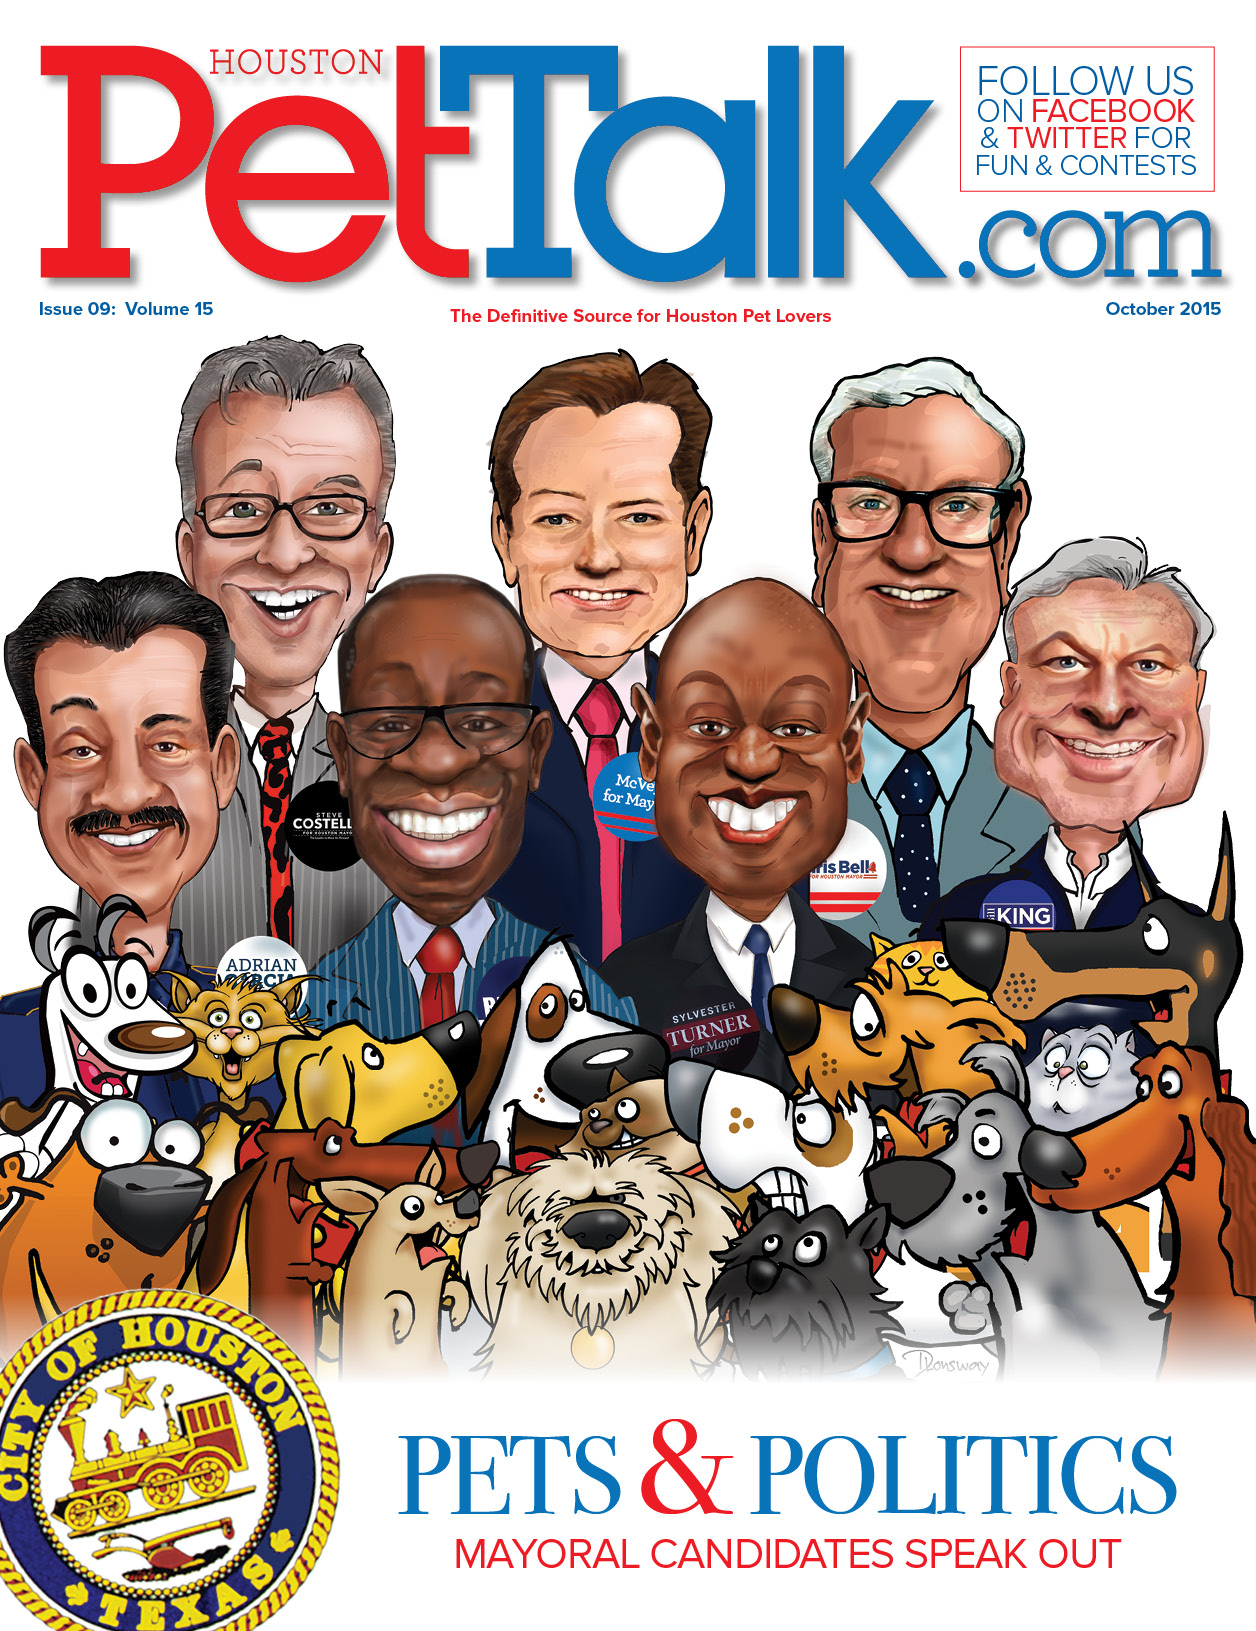 October 2015 Digital Issue of Houston PetTalk